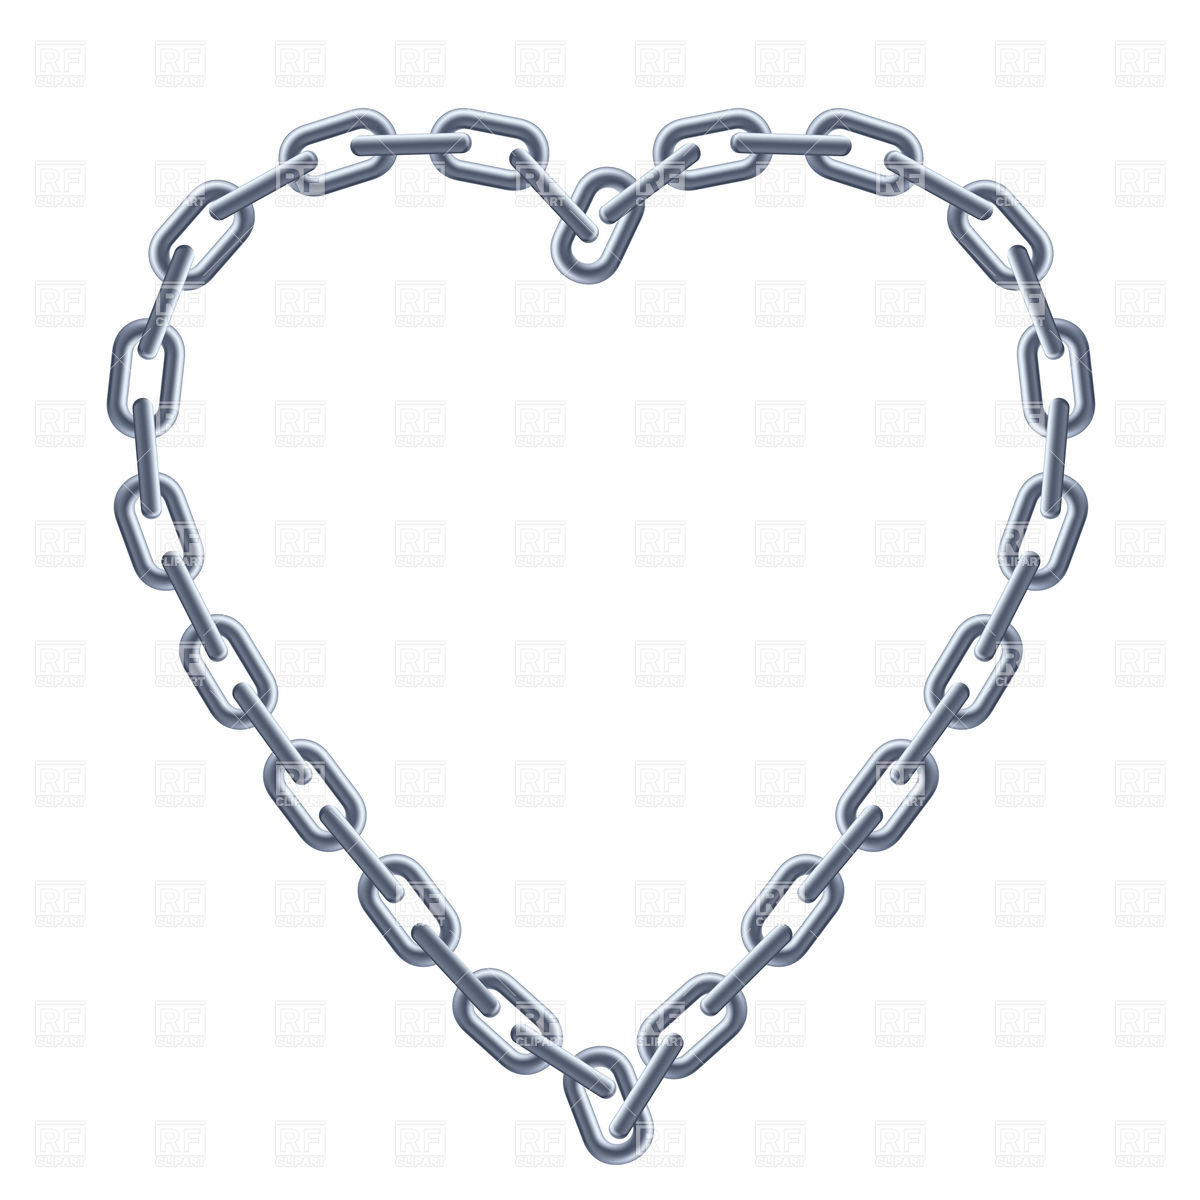 Heart Shaped Silver Chain Frame Download Royalty Free Vector Clipart